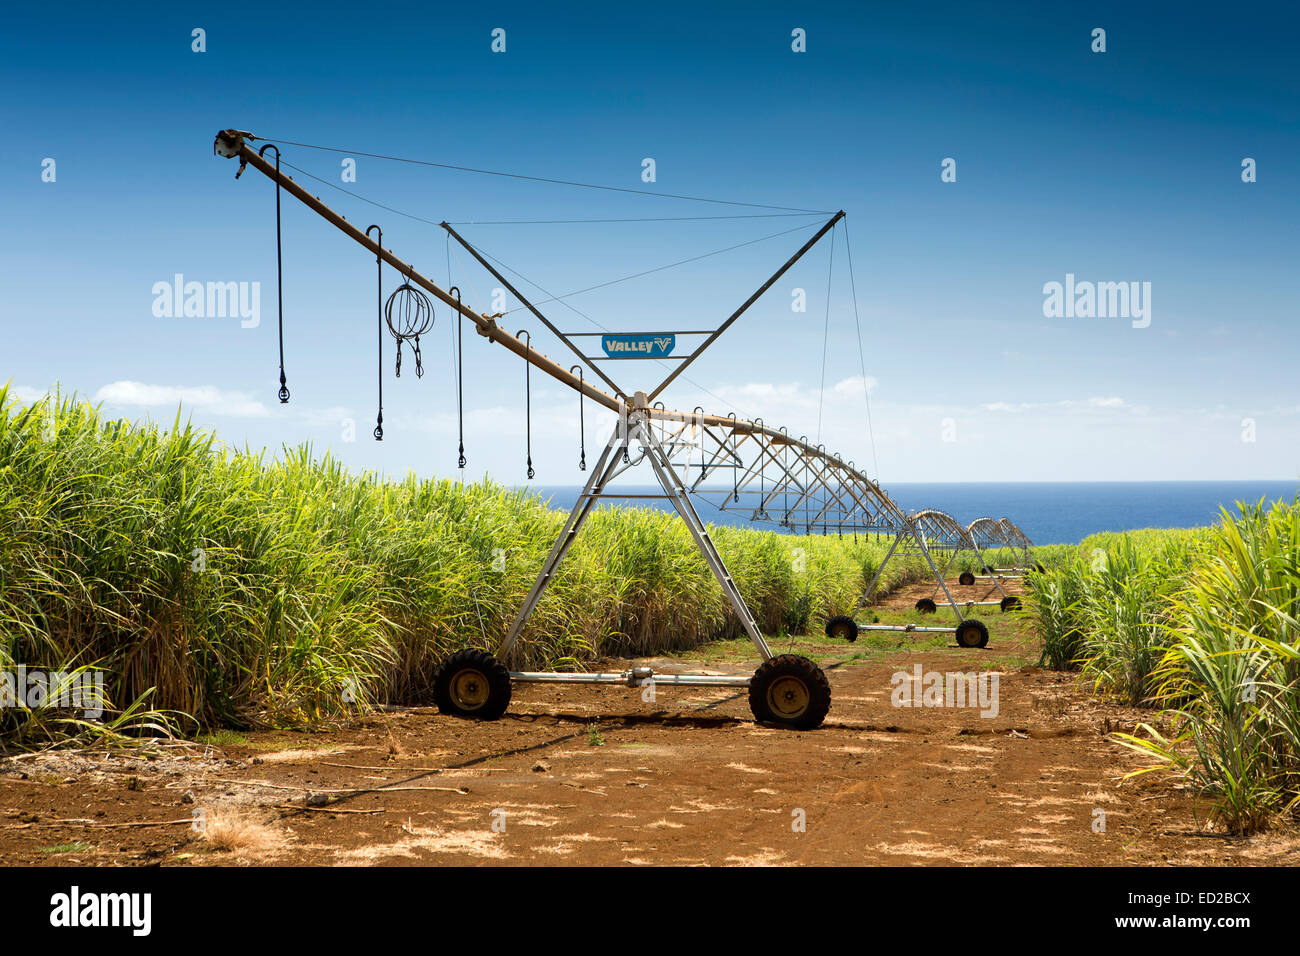 Mauritius, Albion, agriculture, Valley linear crop irrigation machine in sugar cane fields - Stock Image